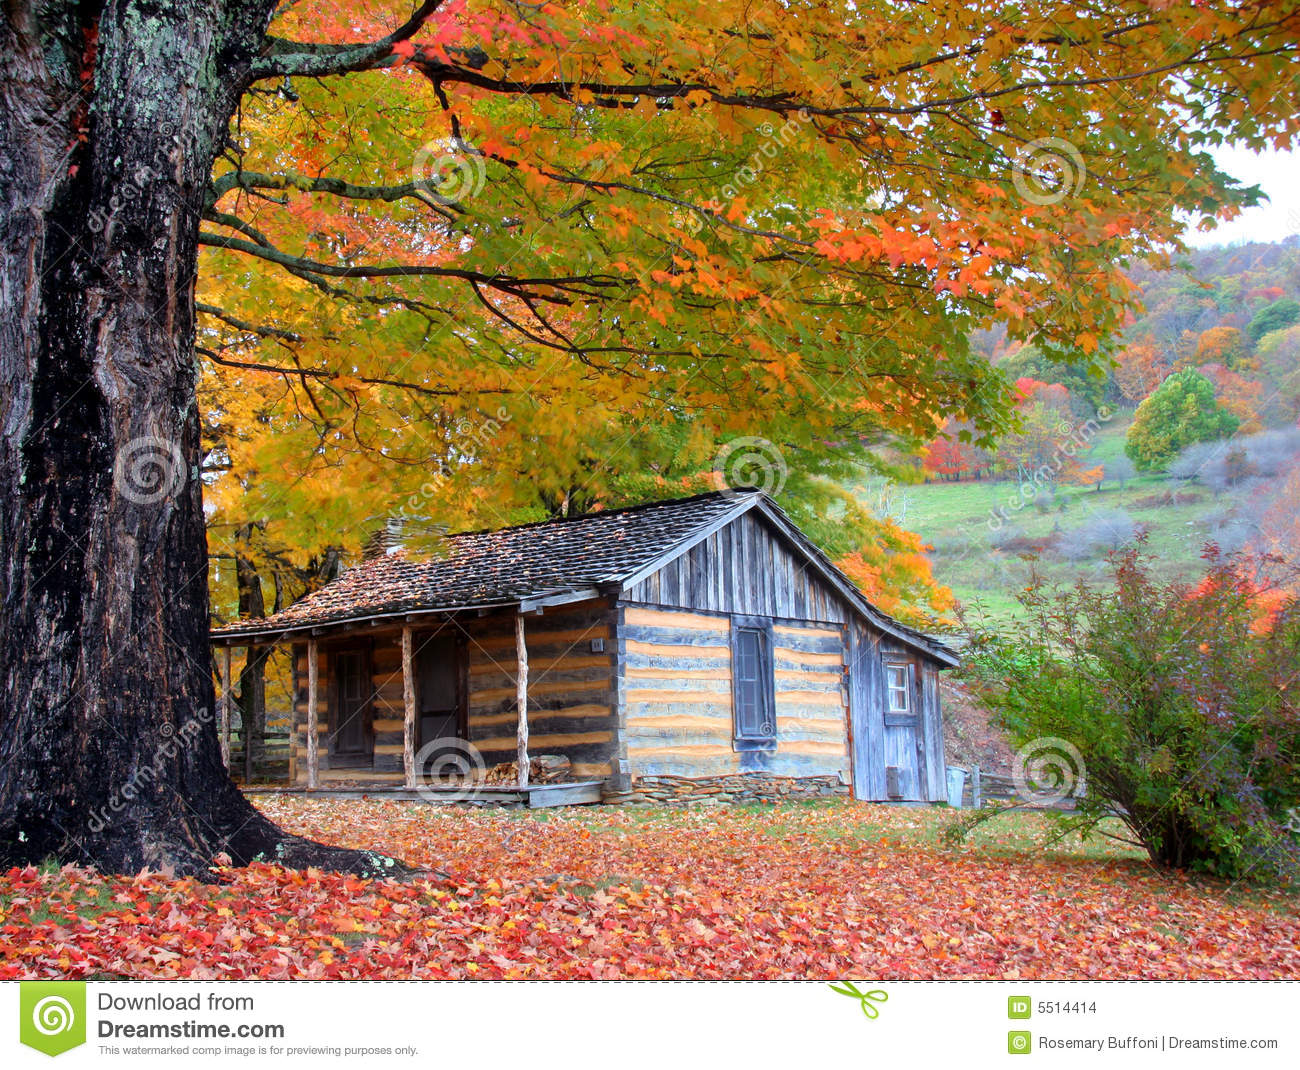 Smoky Mountains Fall Wallpaper Mountain Cabin In Autumn Stock Photo Image Of October